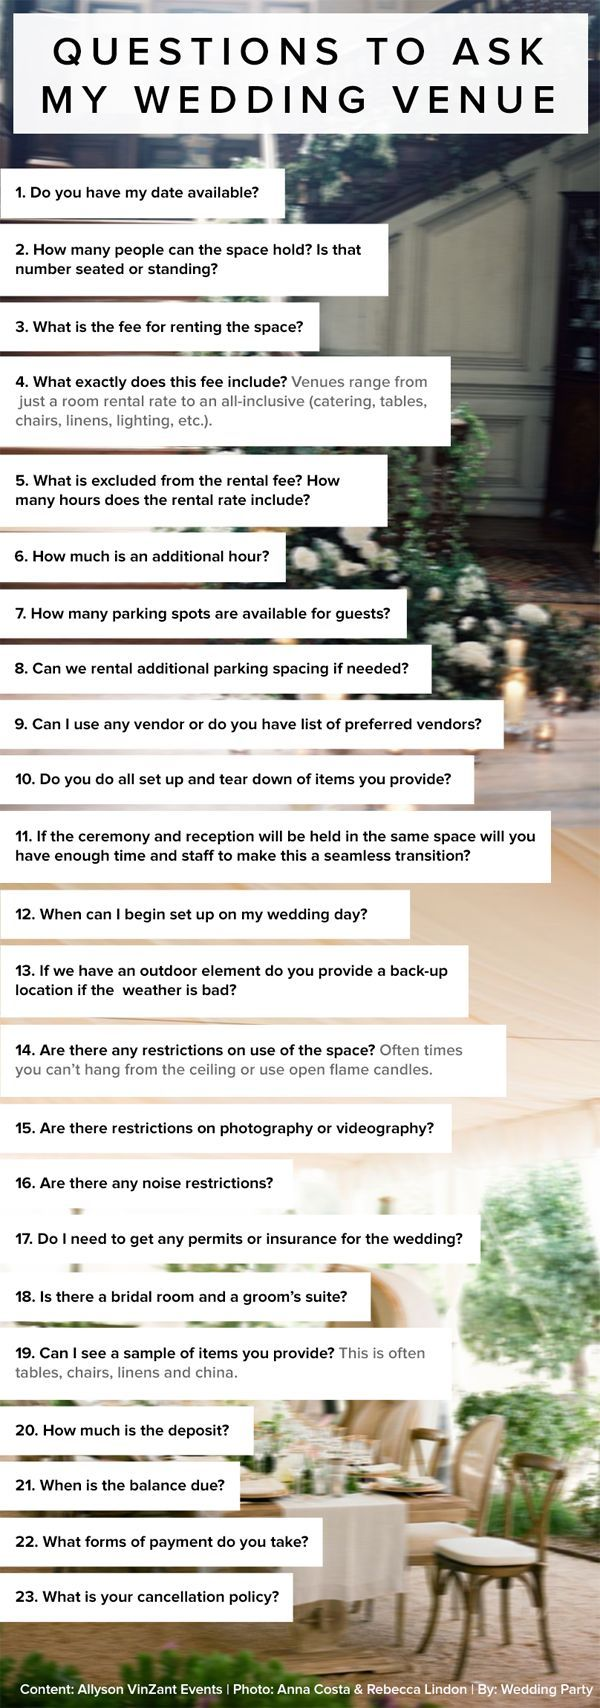 For Toronto Brides: Remember to ask about the Landmark Fees! Venues don't always give you all the information you need up front!